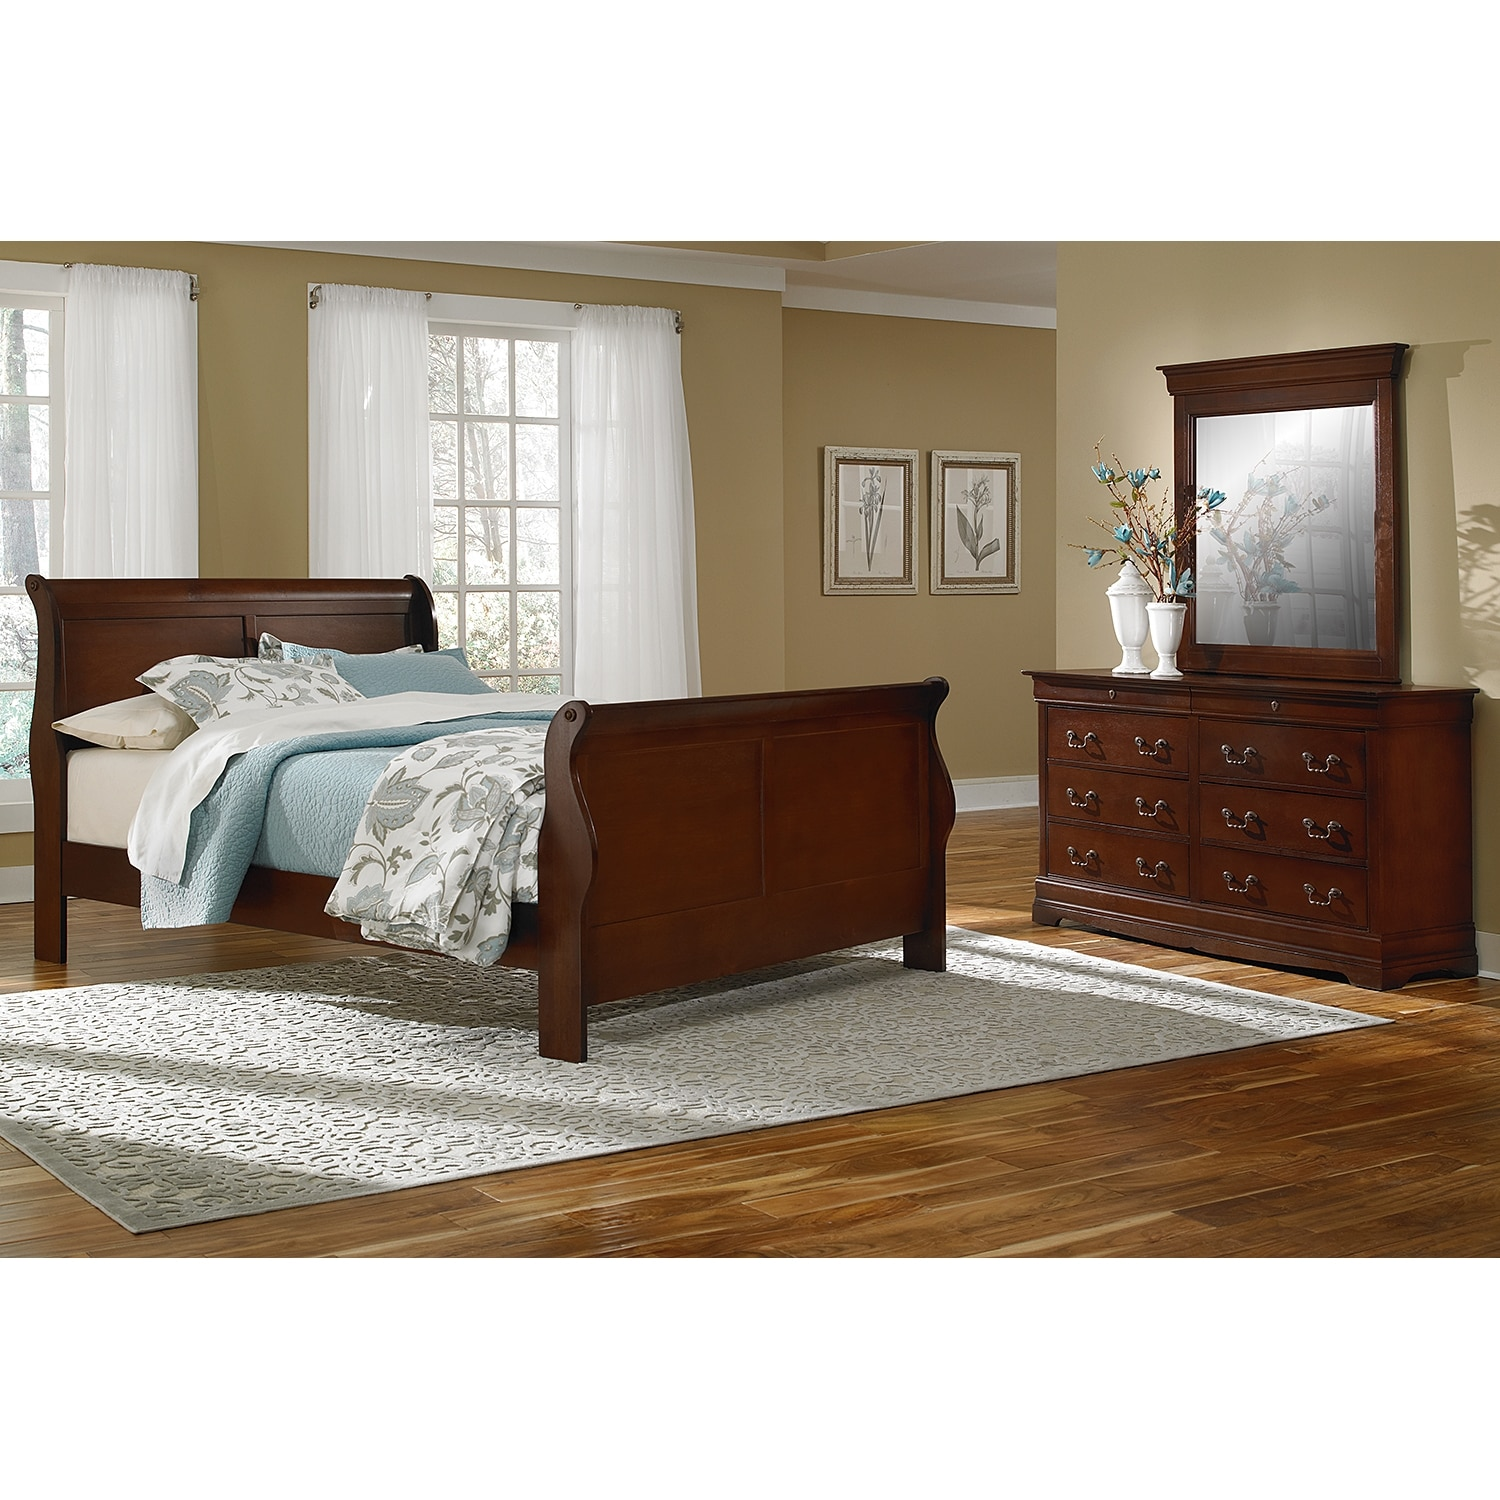 Neo Classic 5-Piece King Bedroom Set - Cherry | Value City Furniture